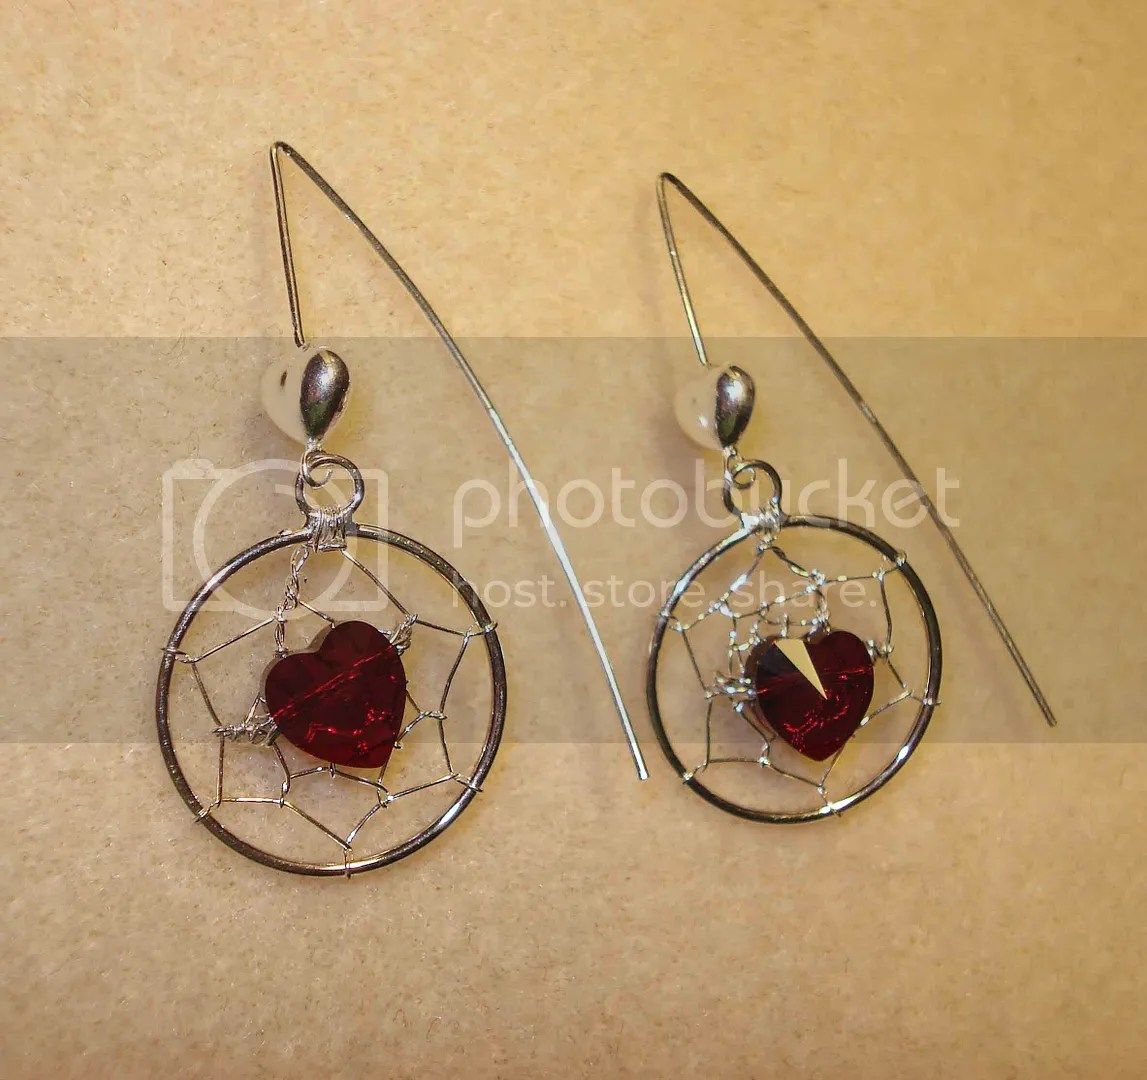 swarovski crystal beaded sterling silver earrings artbeads.com sweepstakes etsy Valentine's Day